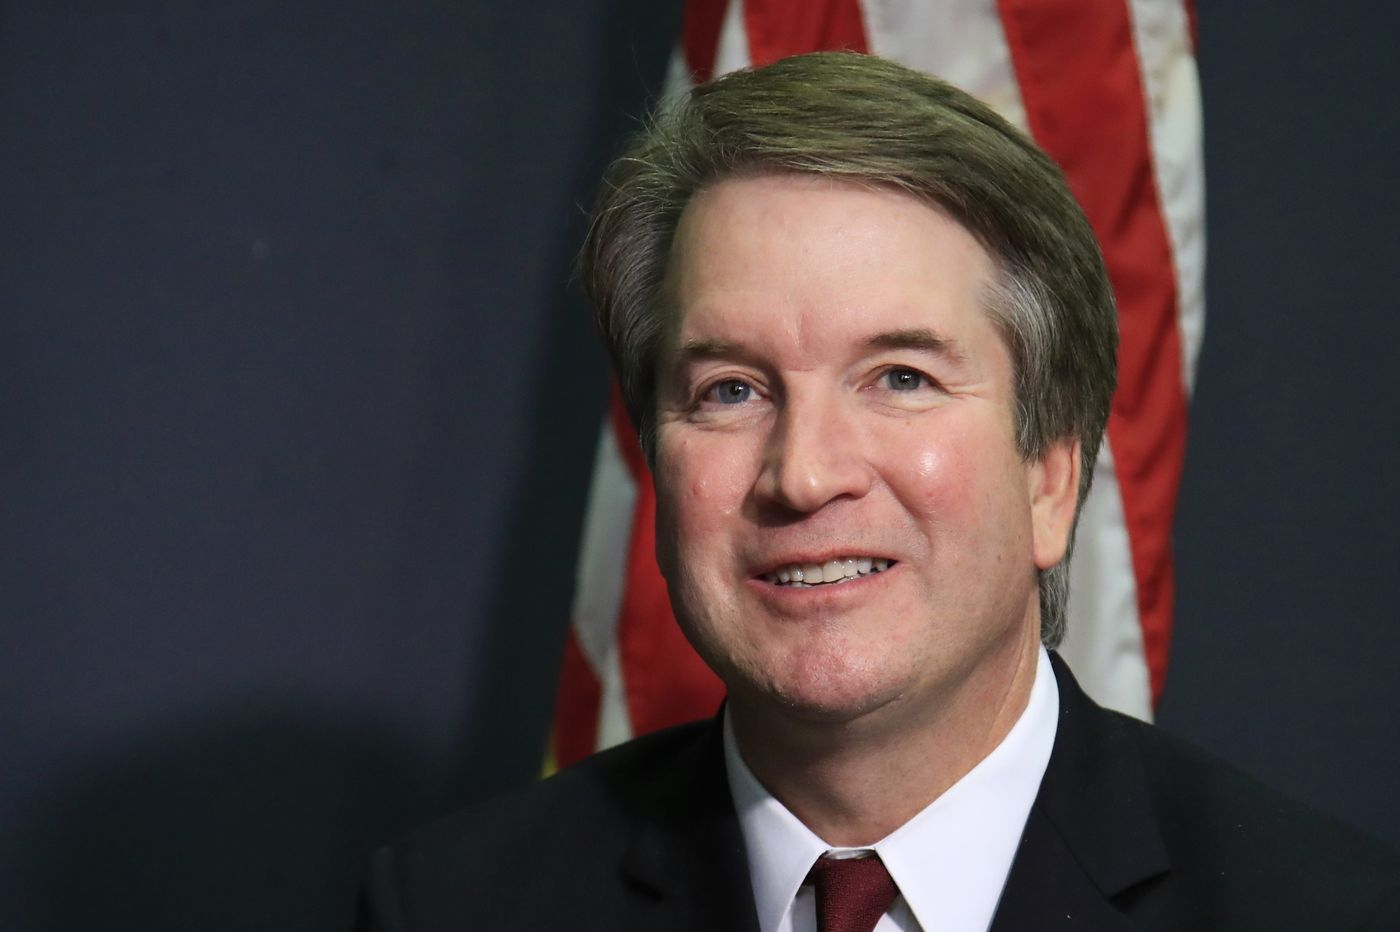 Hours before Kavanaugh confirmation hearings, Bush lawyer releases 42,000 pages of documents to Judiciary Committee